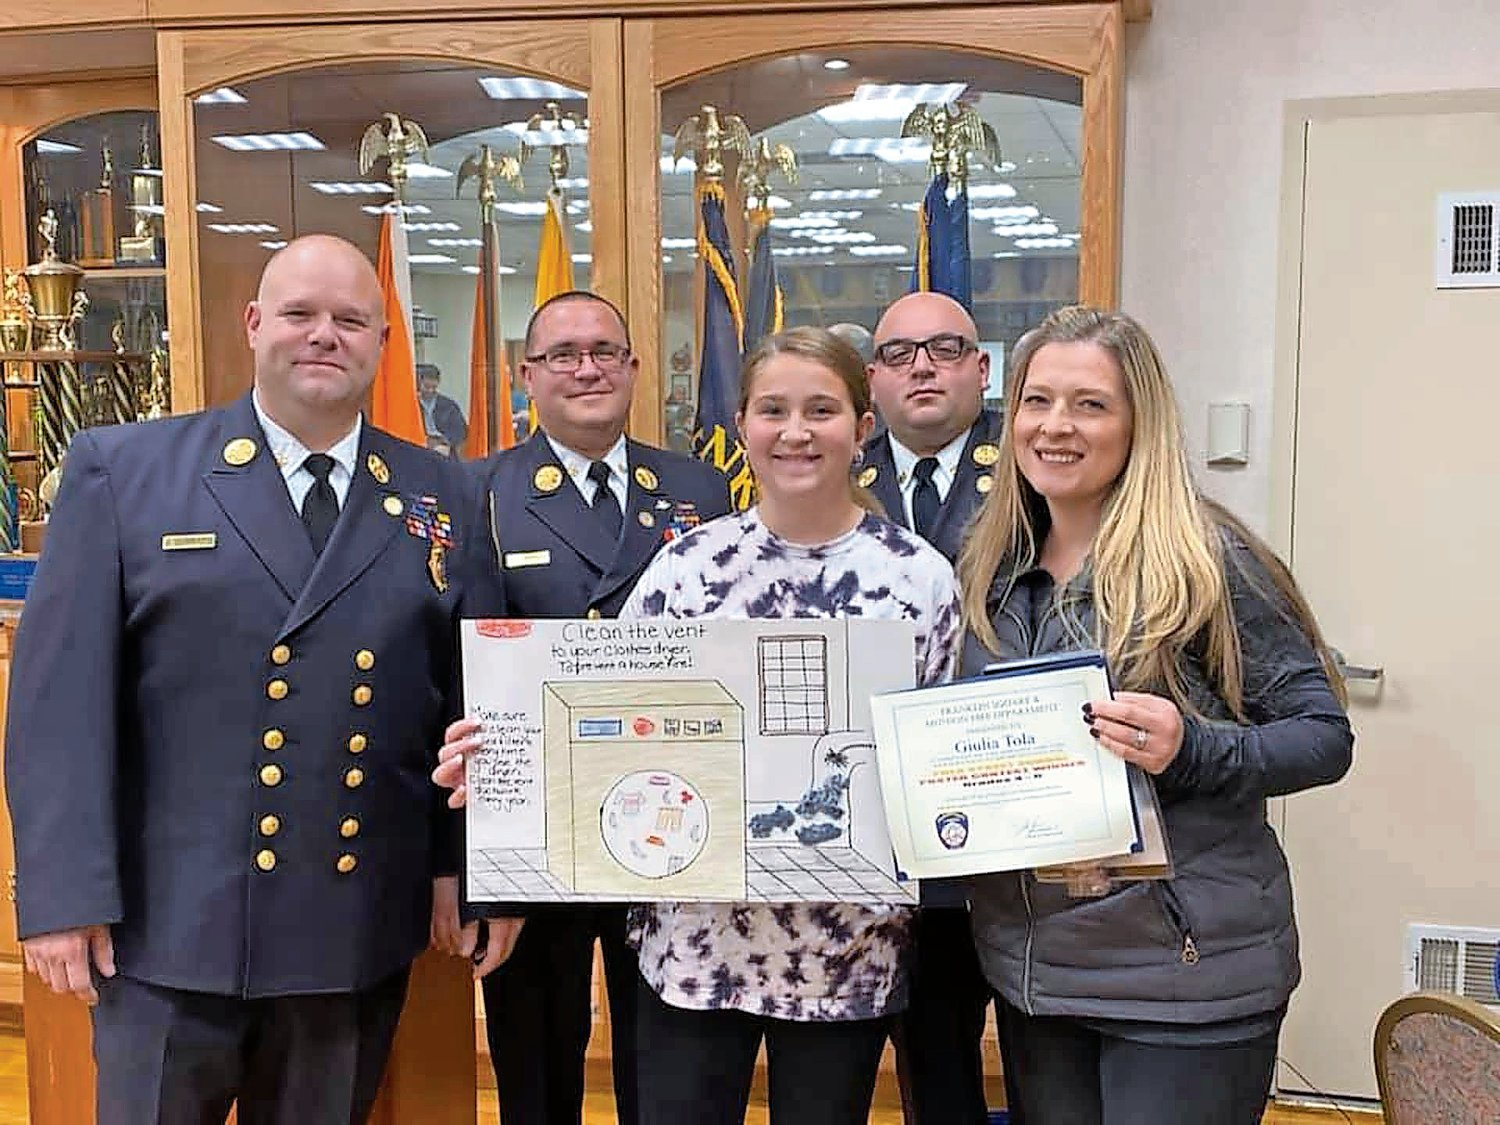 Giulia Tola, third from right, a student at the Polk Street School, was recognized for her poster about the dangers of lint.